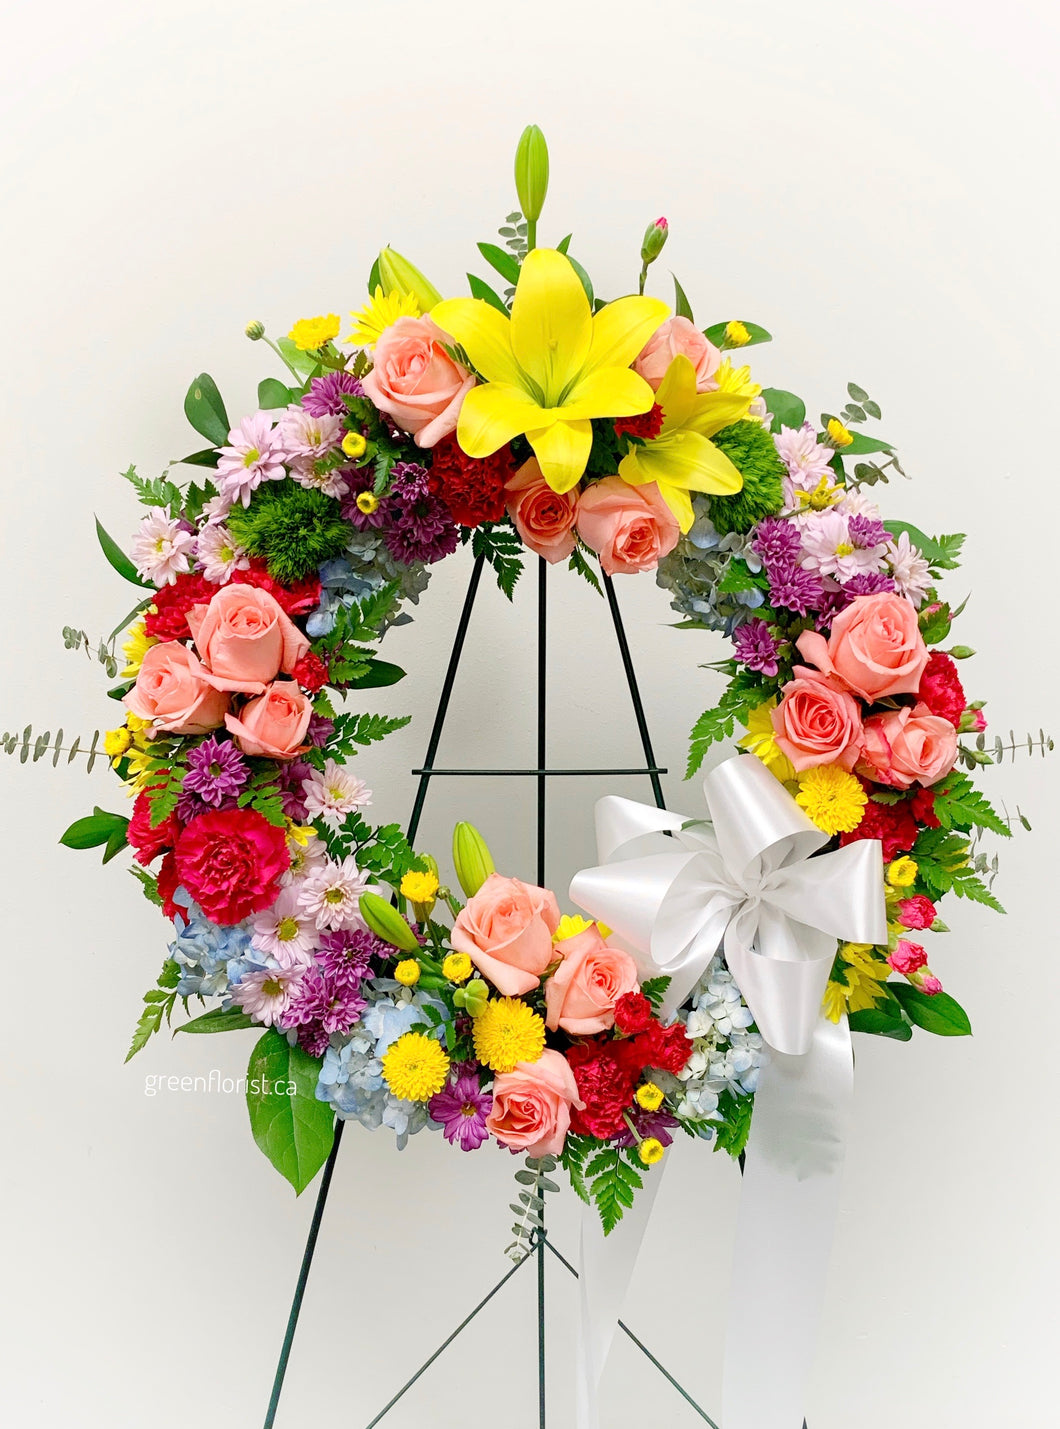 Colourful Serenity Wreath